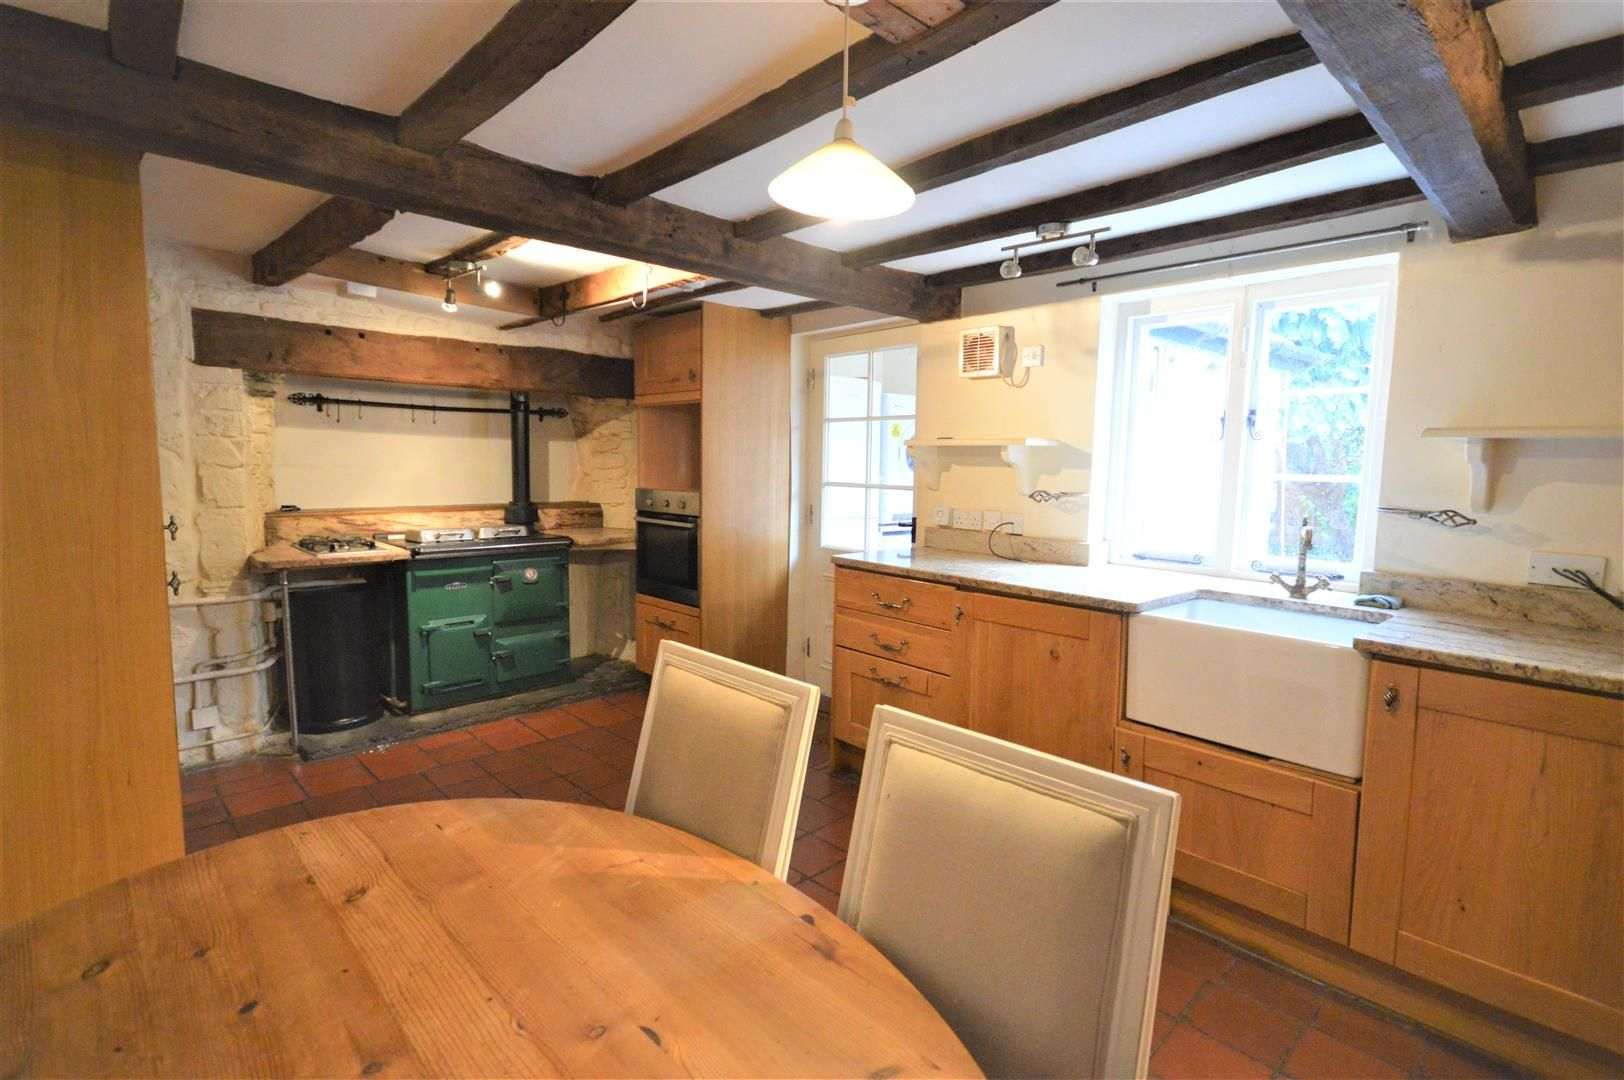 4 bed terraced for sale in Leominster 3